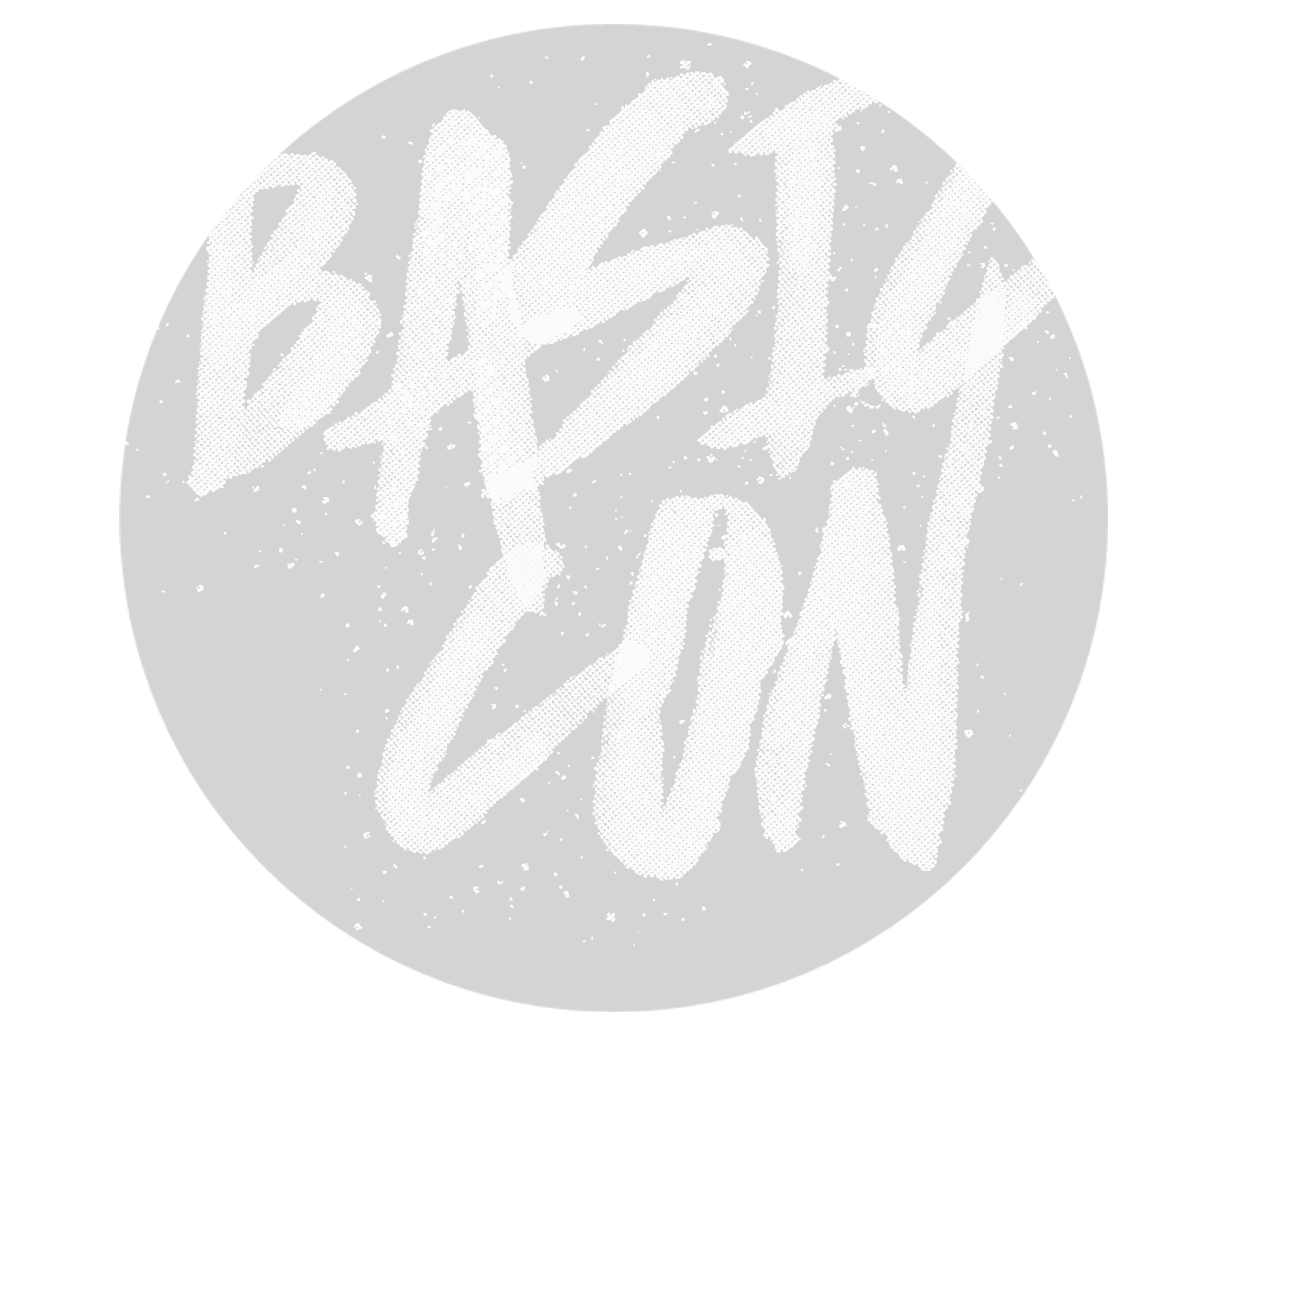 BASICcon - College and Young Adult Conference